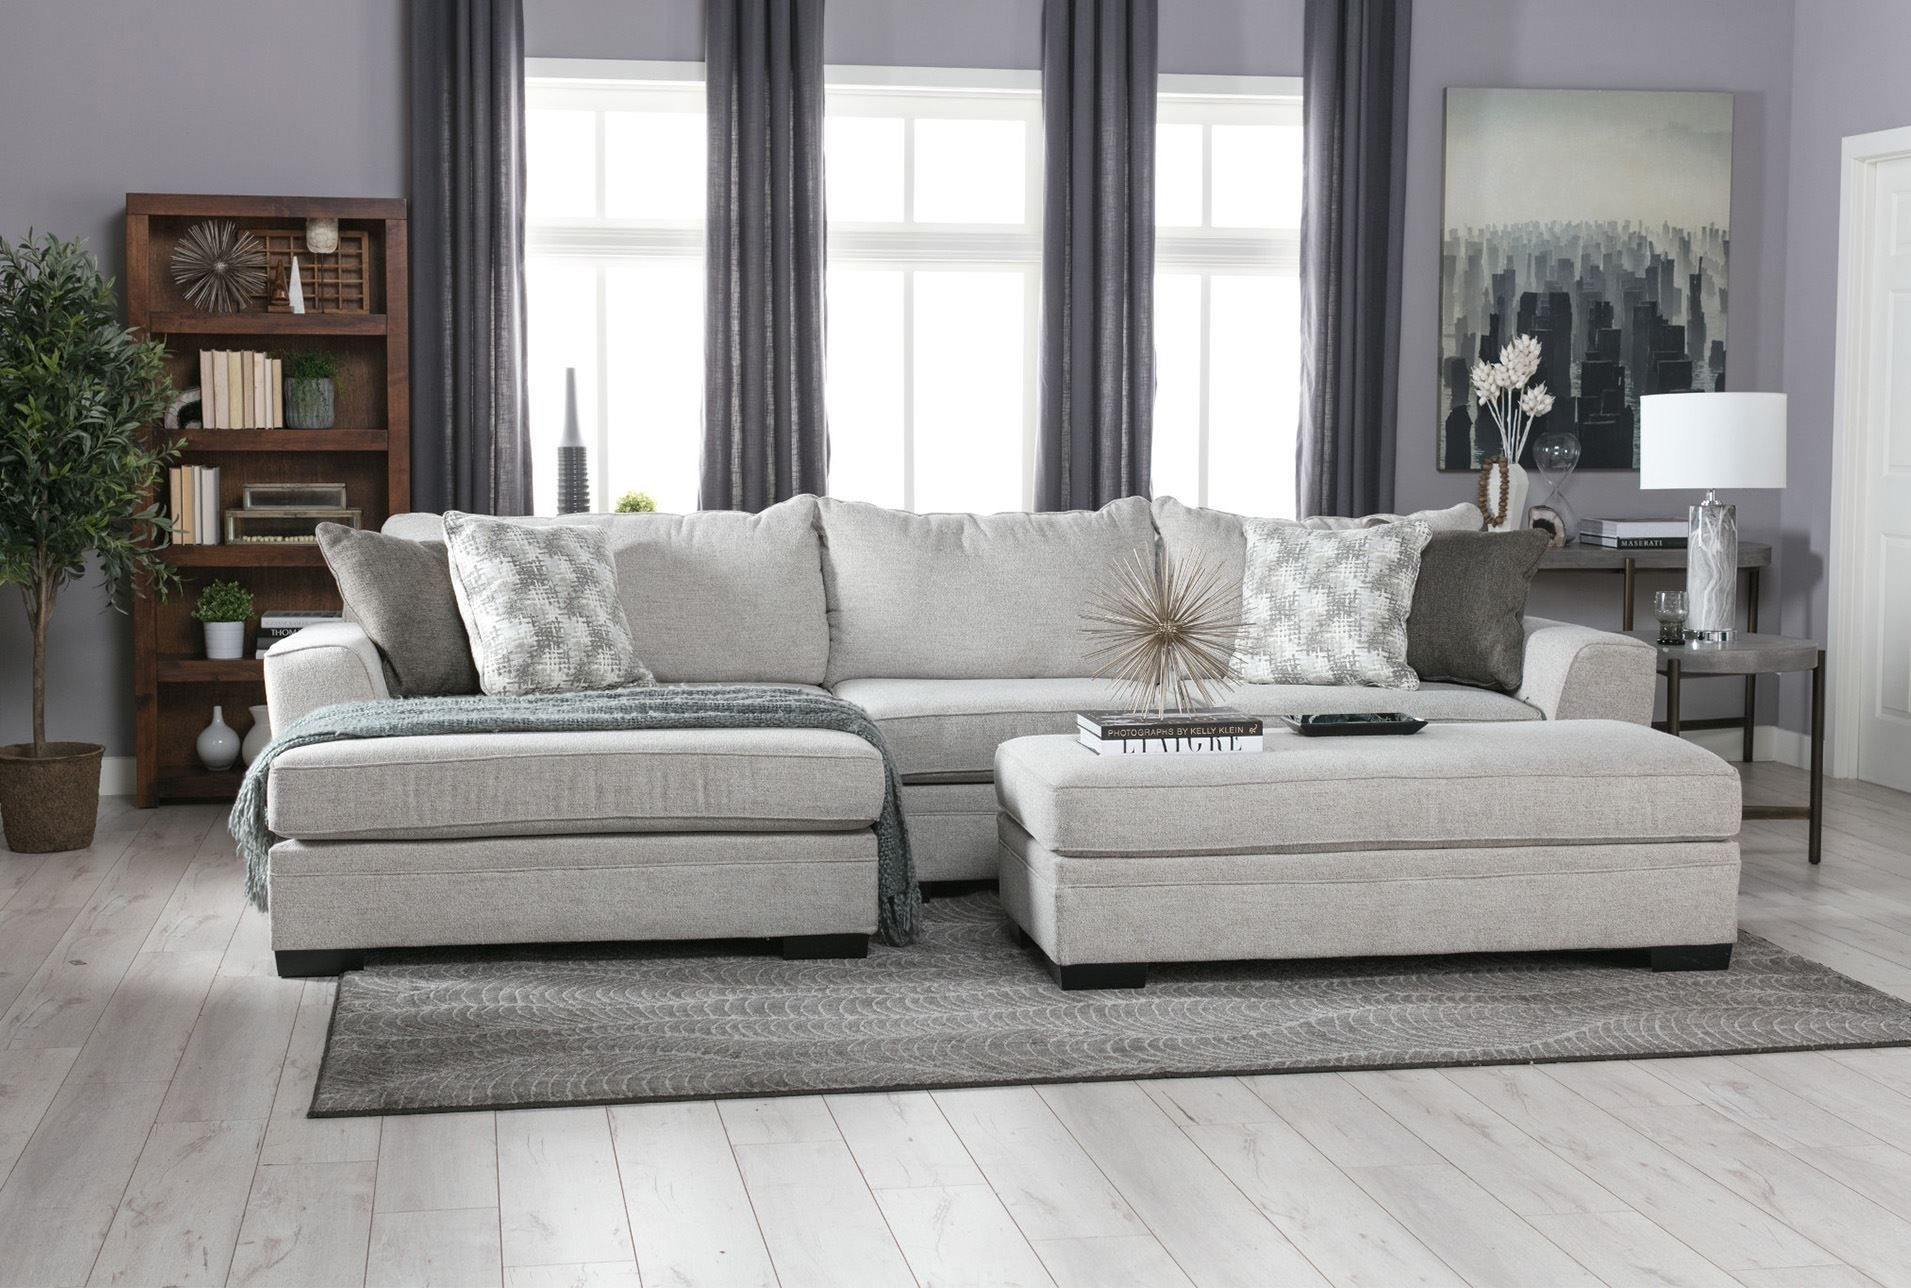 Delano 2 Piece Sectional W/laf Oversized Chaise | Sylvia Son within Delano 2 Piece Sectionals With Raf Oversized Chaise